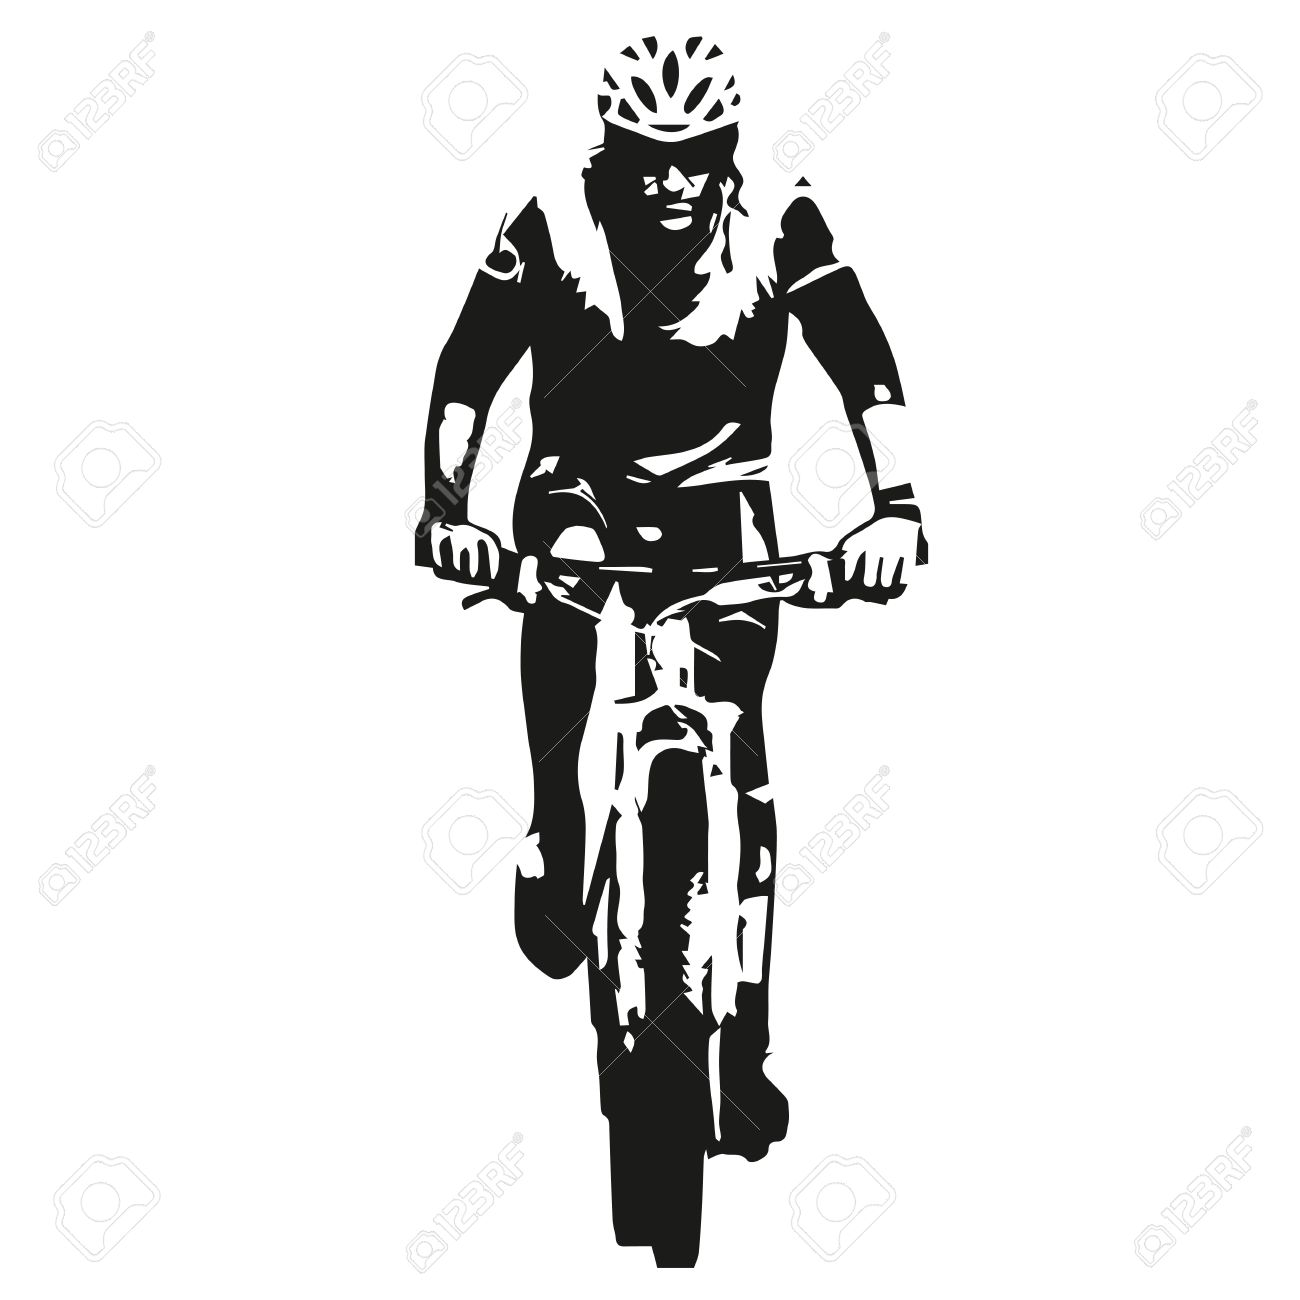 mountain biker abstract vector bicycle rider silhouette stock vector 55397355